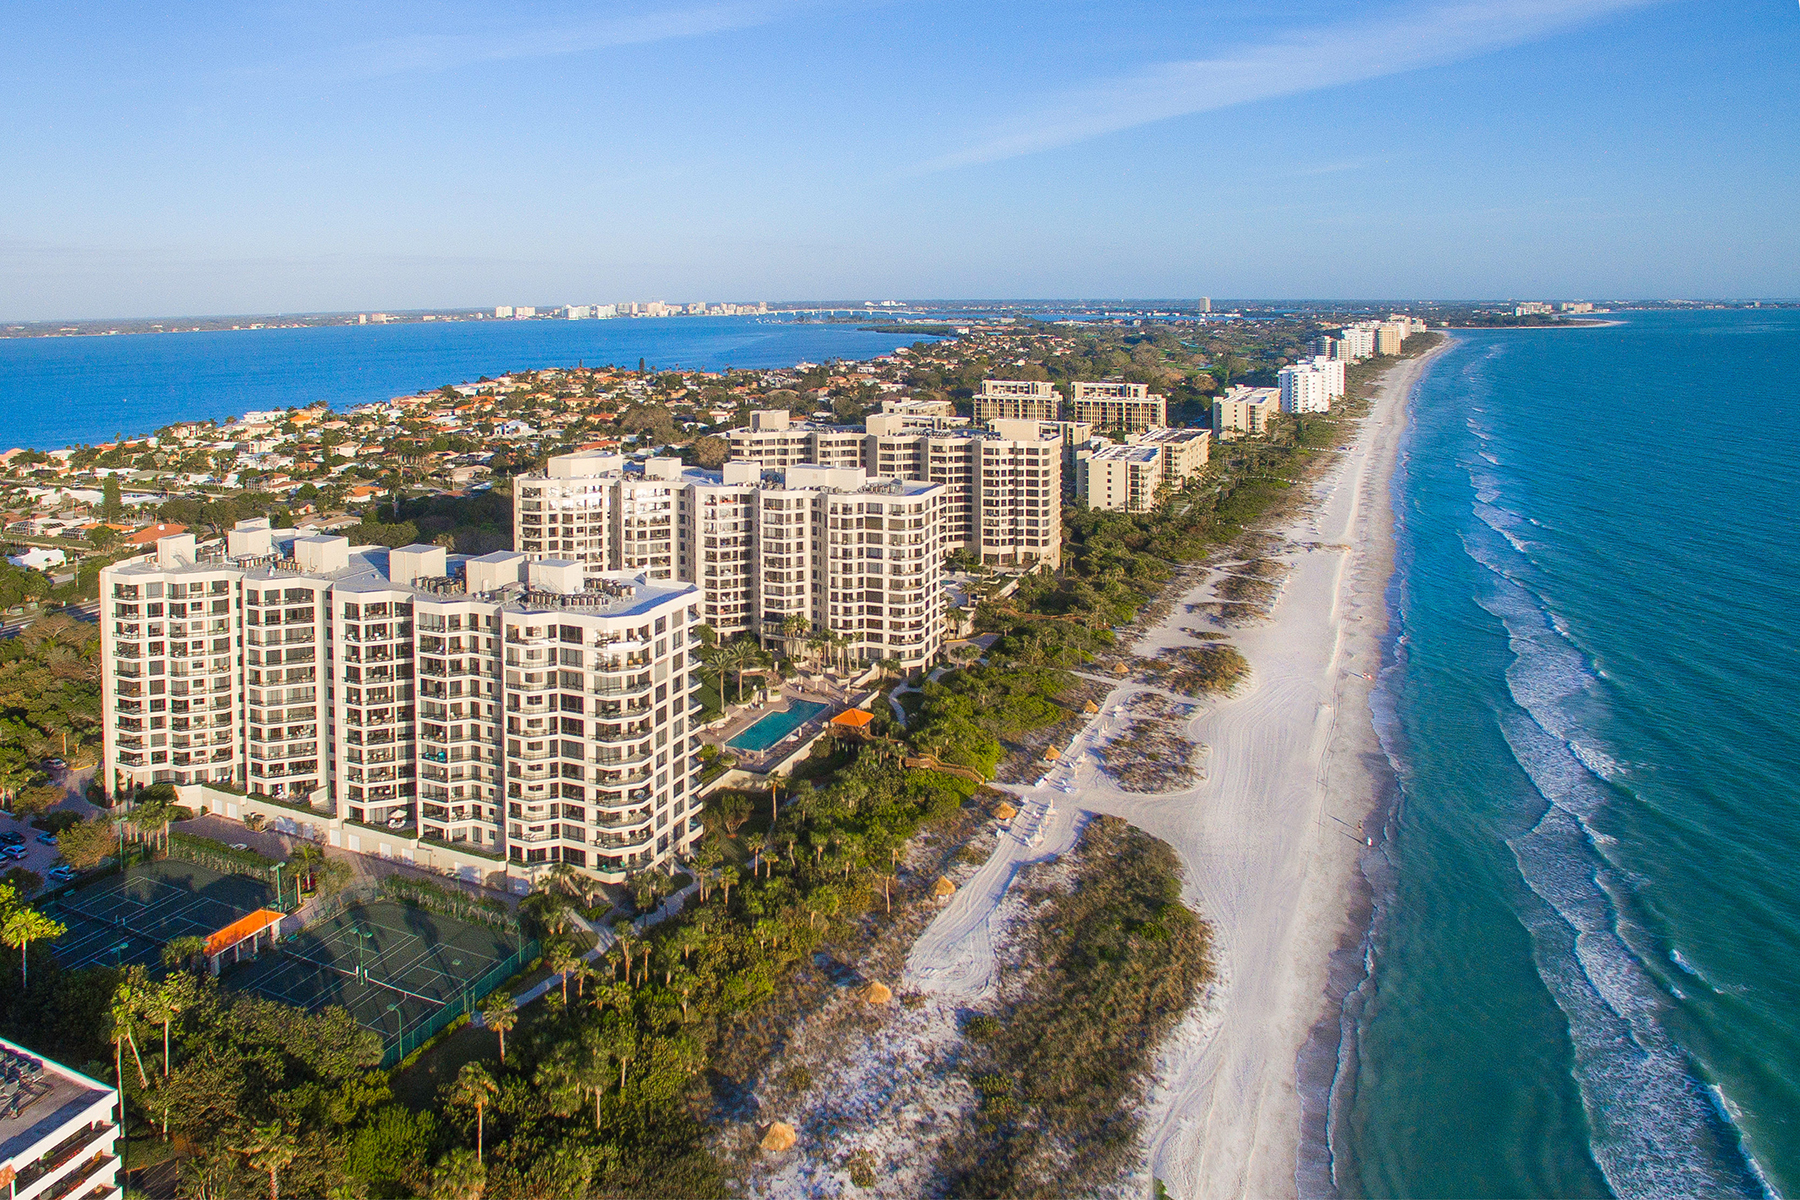 Condominium for Sale at WATER CLUB 1281 Gulf Of Mexico Dr 904 Longboat Key, Florida, 34228 United States